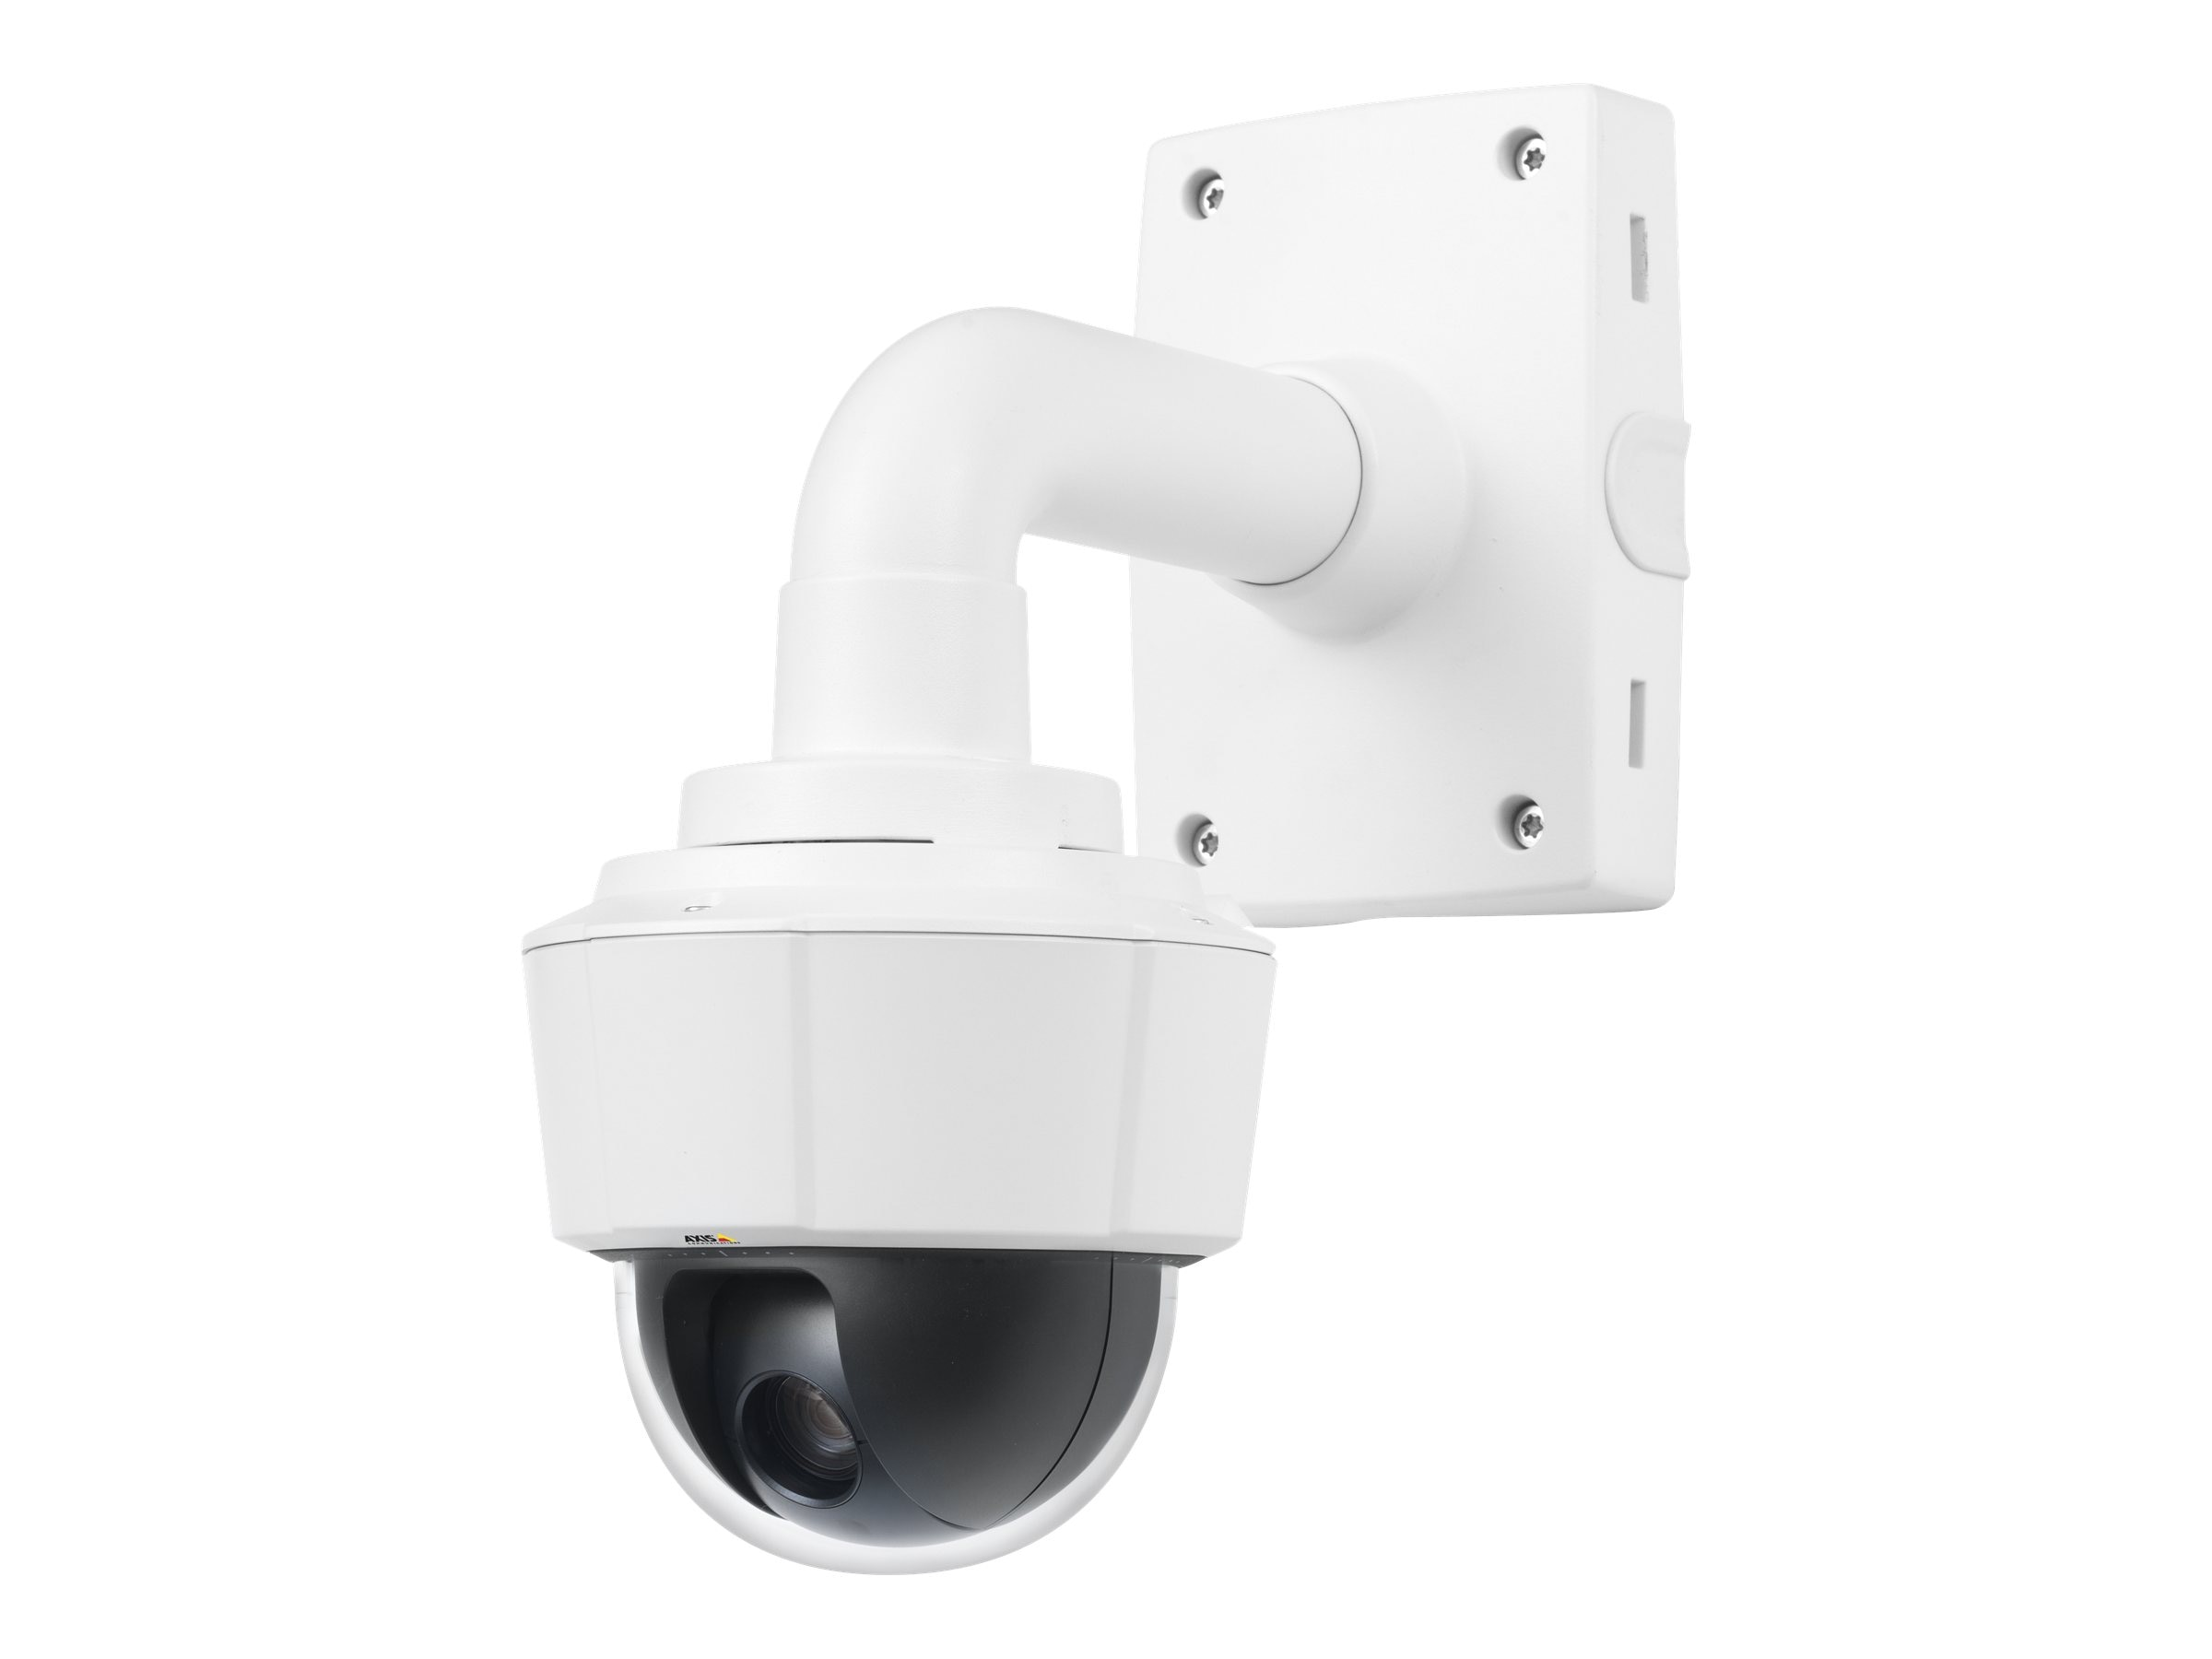 Axis P5512 Compact PTZ Network Camera, 12x Zoom